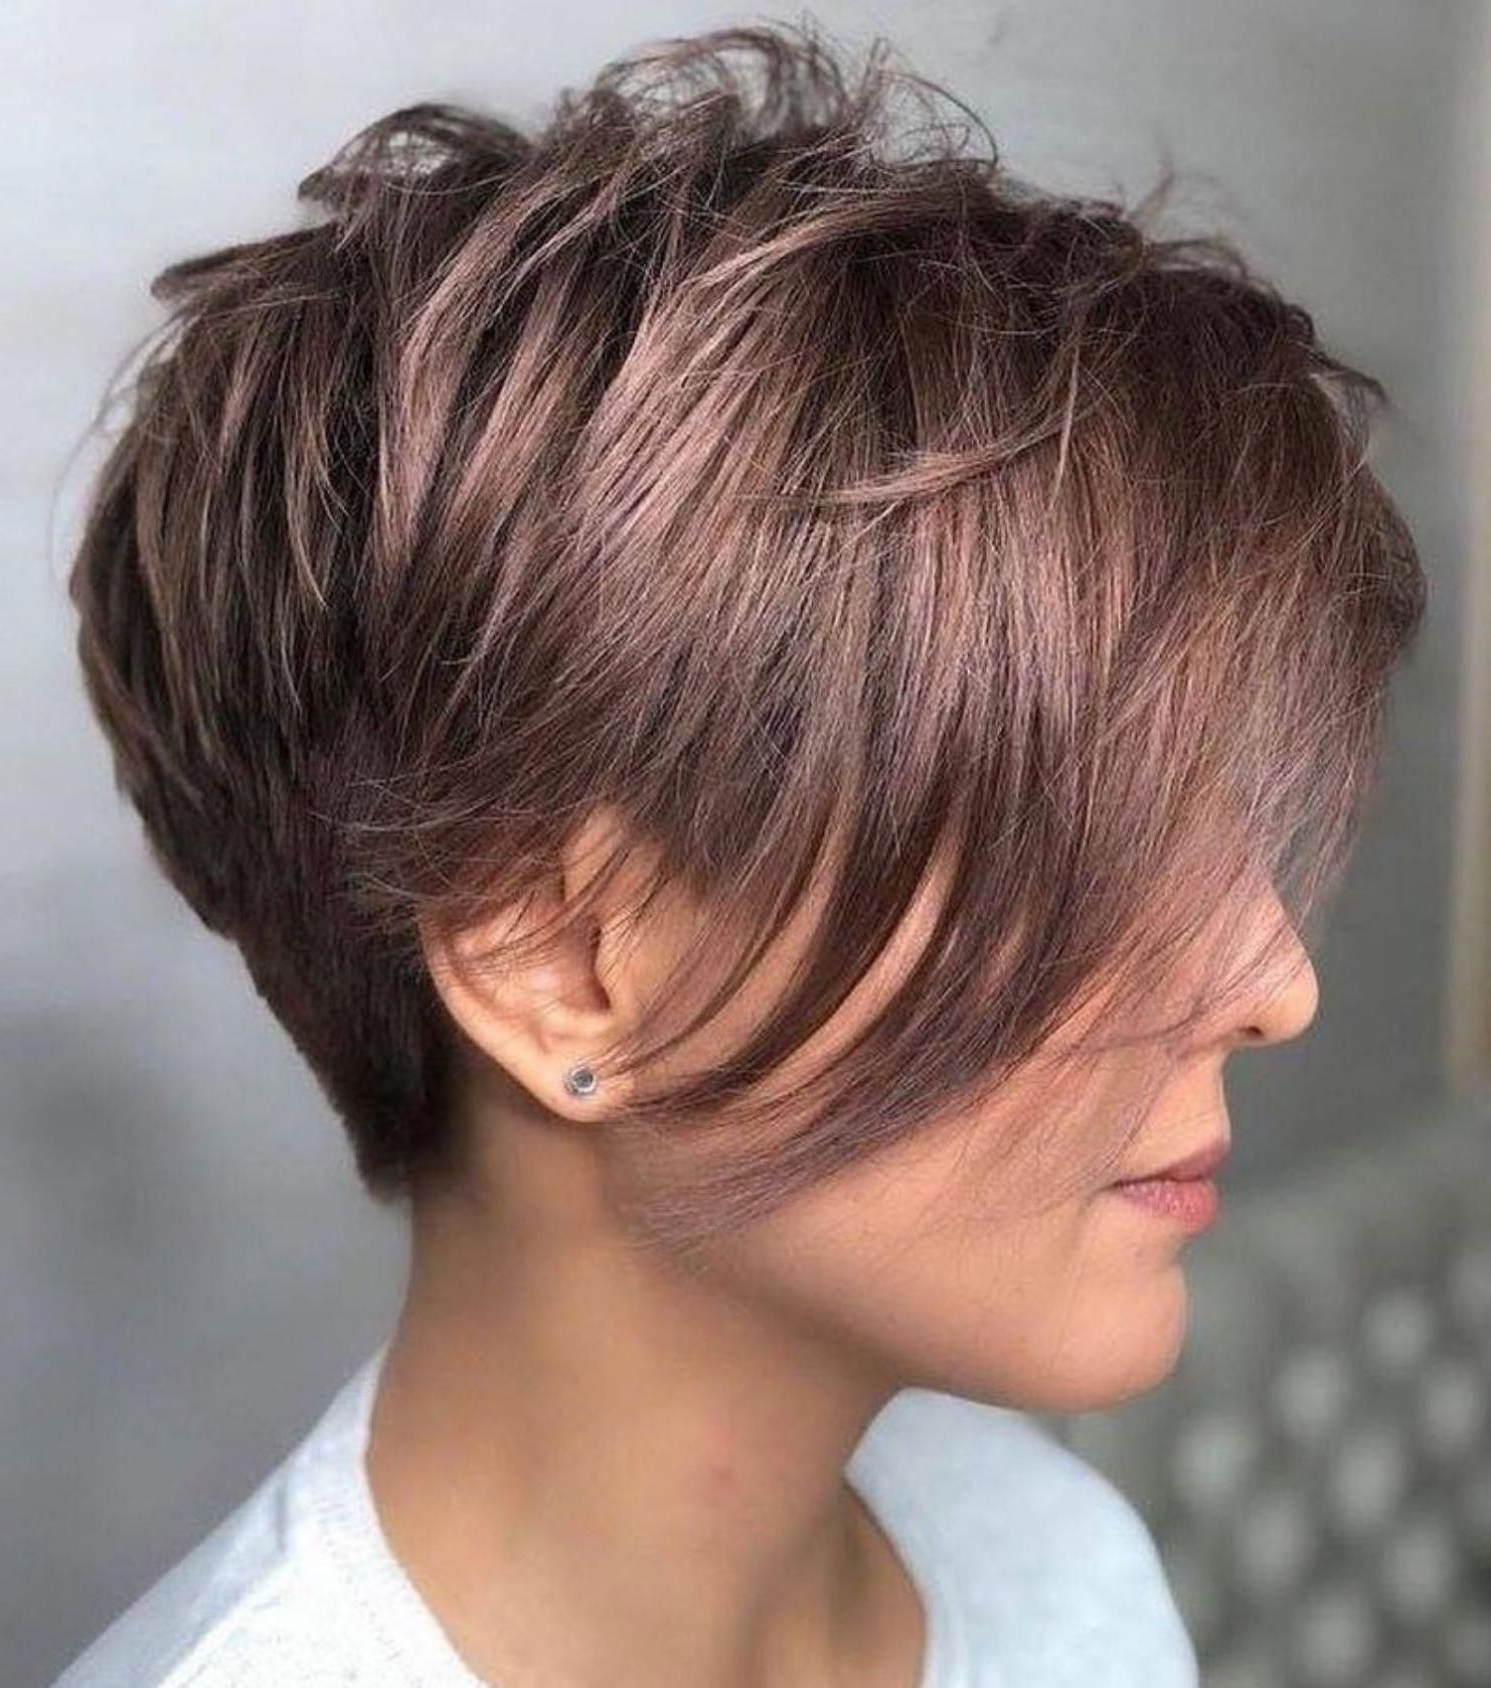 Choppy Pixie With Long Feathered Bangs #longpixie In 2020 Within Most Up To Date Feathery Bangs Hairstyles With A Shaggy Pixie (View 4 of 20)